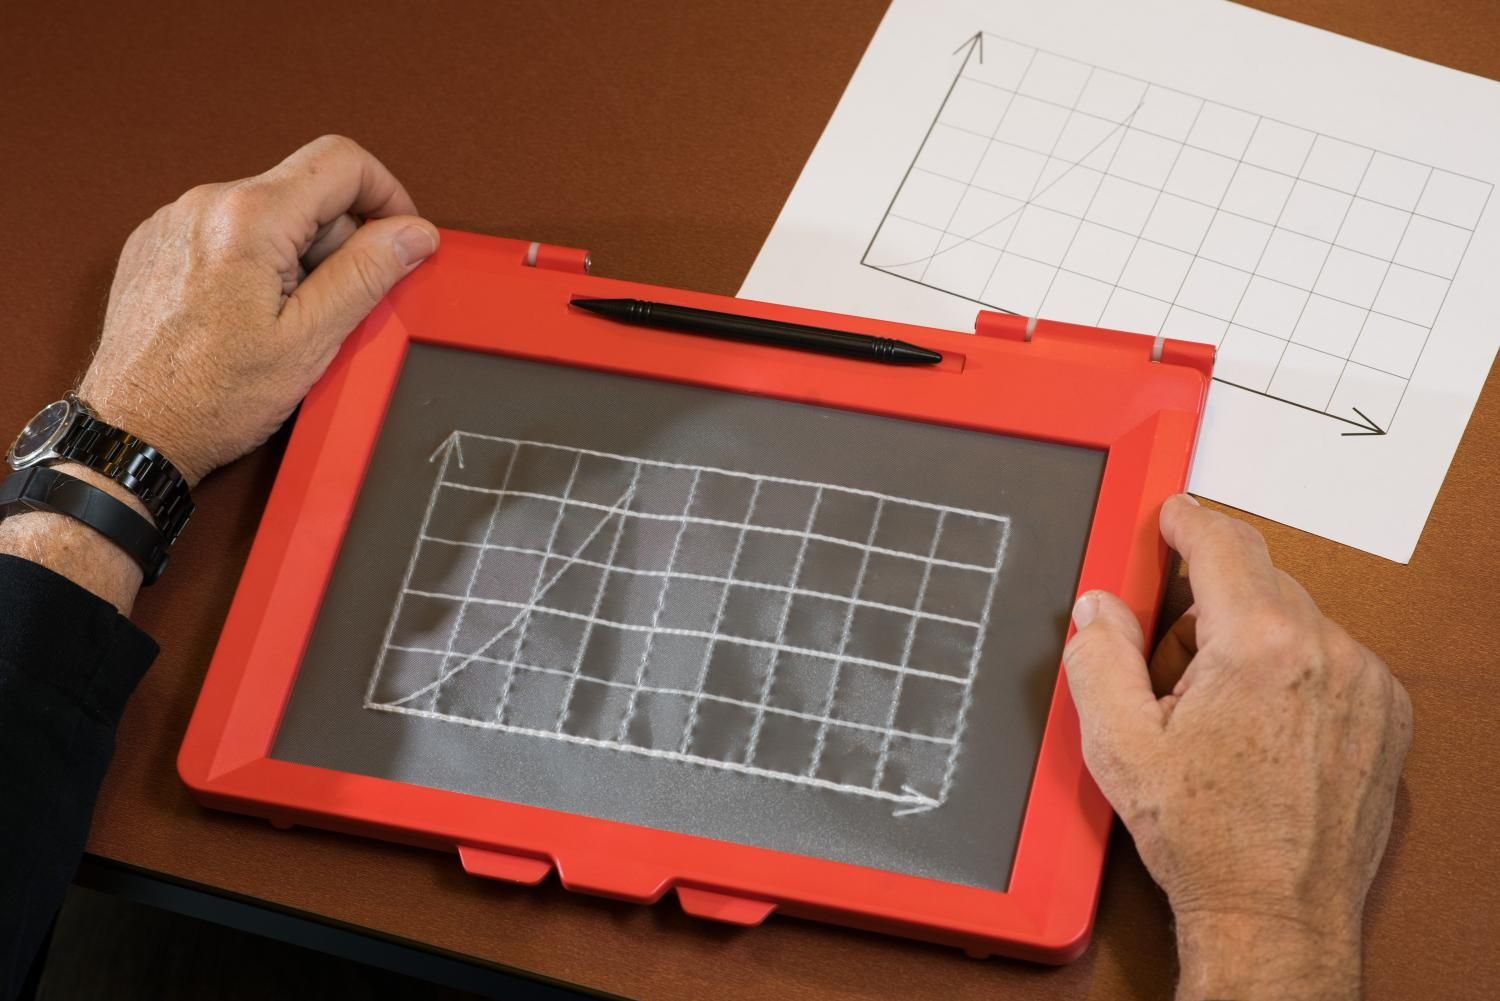 Teaching The Blind To Draw And Do Stem Teaching Technology Transfer Startup Company